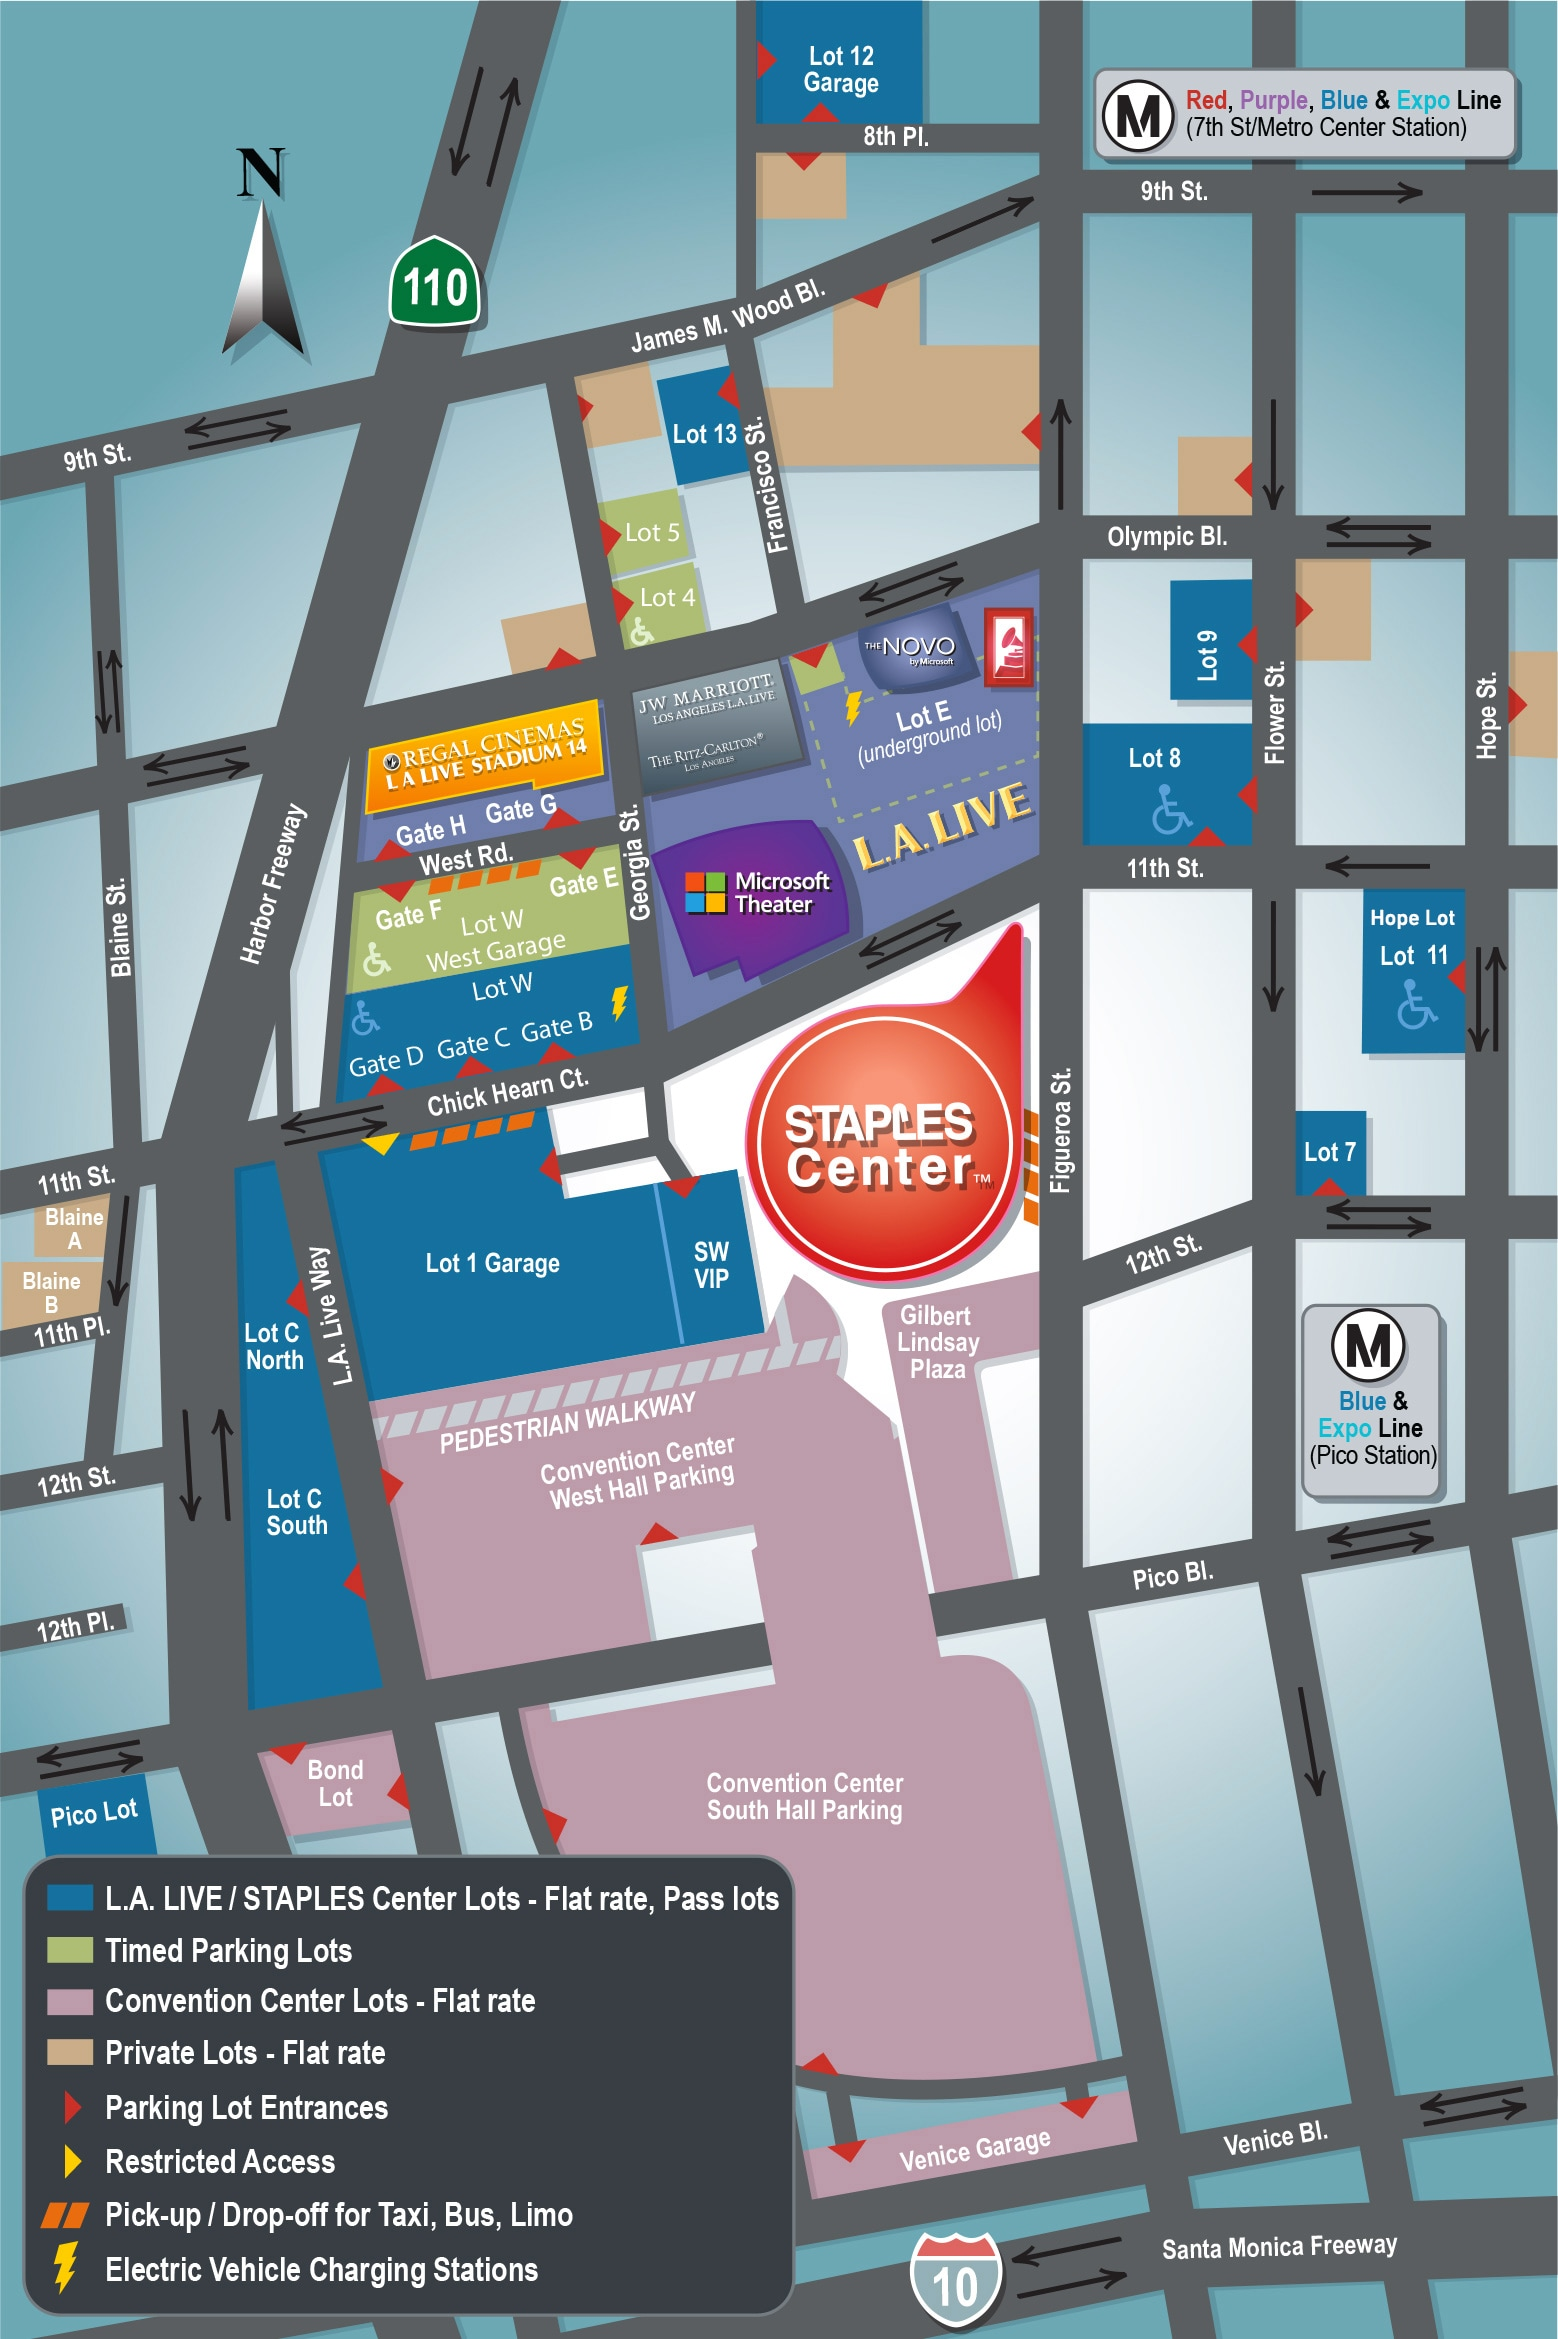 STAPLES Center Parking  Directions  Los Angeles Lakers